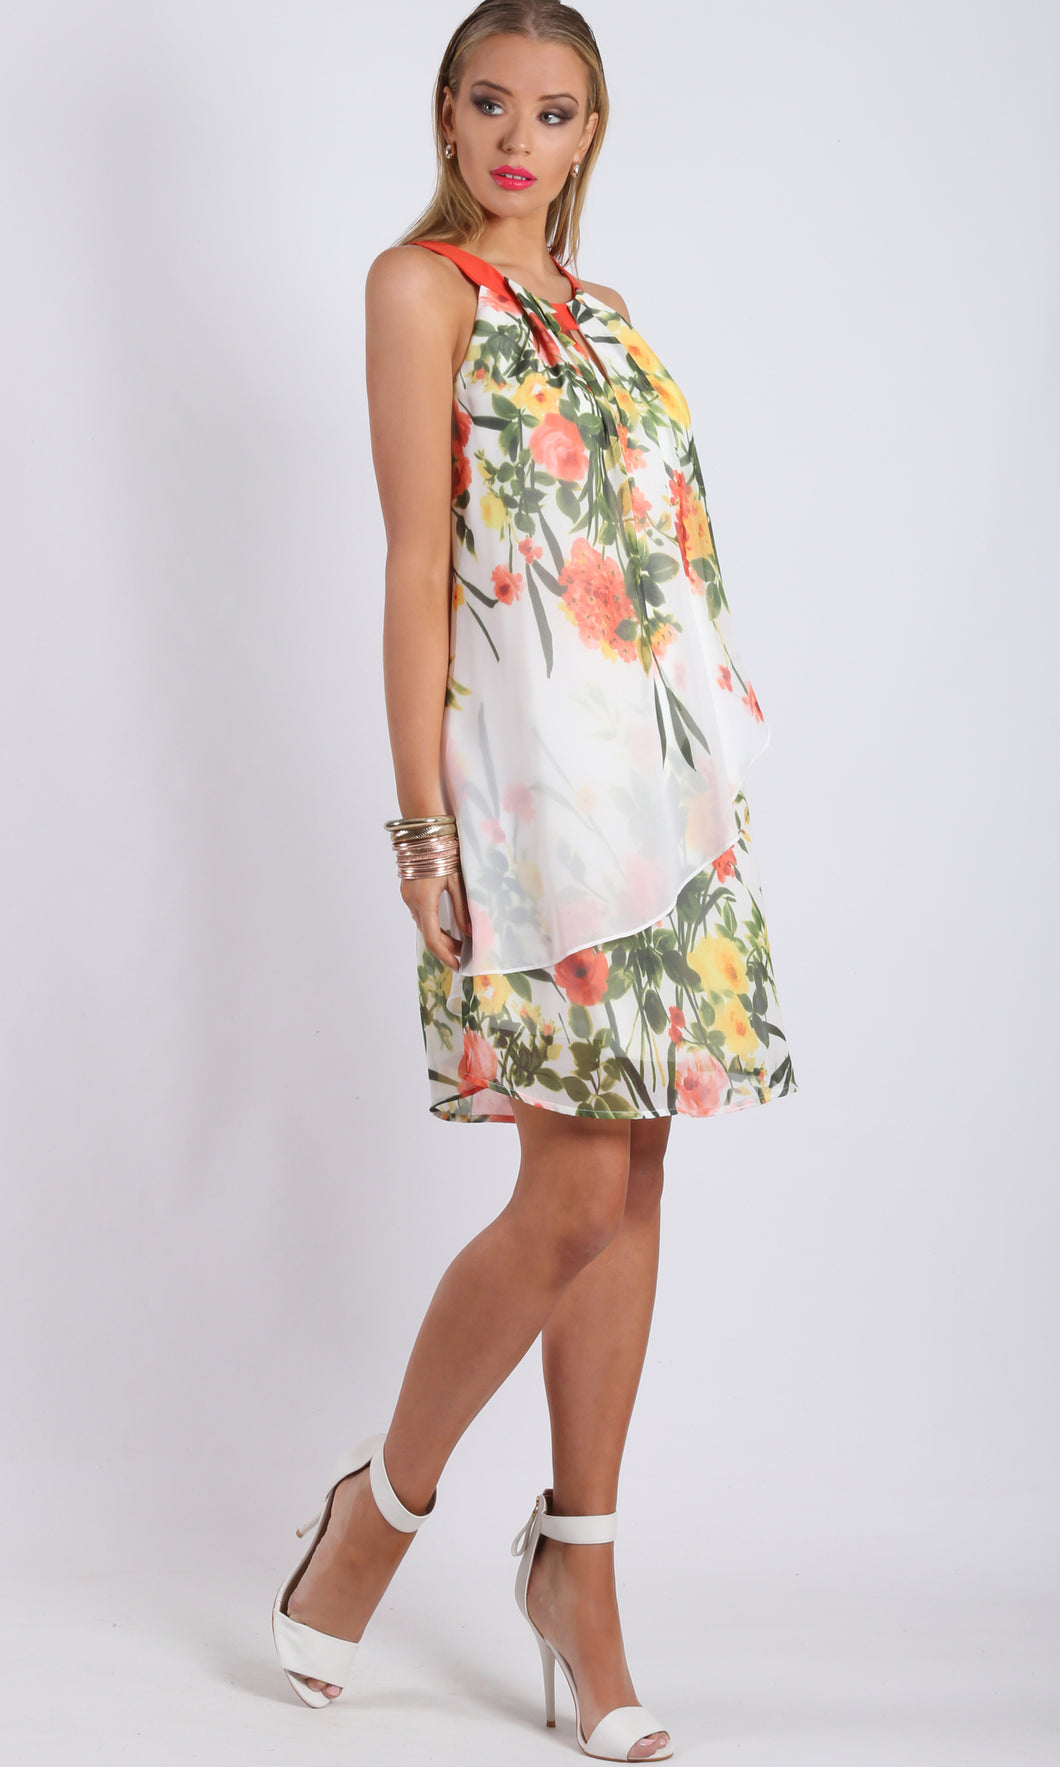 JS0224-14TB Floral Halter Neck Dress (Pack)